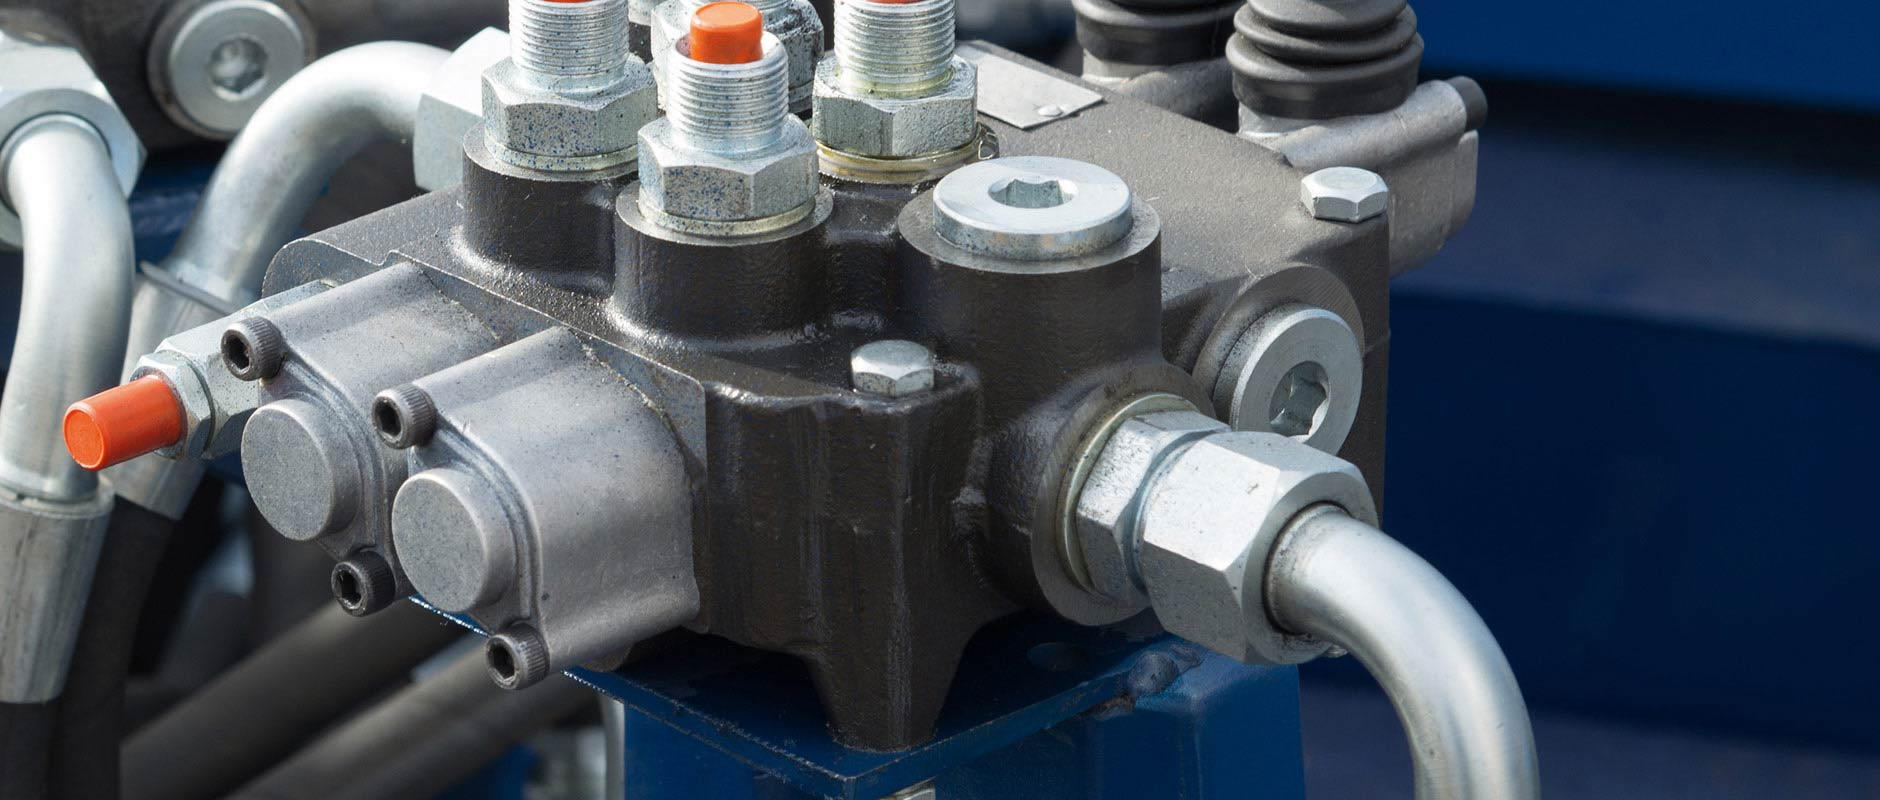 applied hydraulic solutions hydraulic tubes fittings and levers on control panel